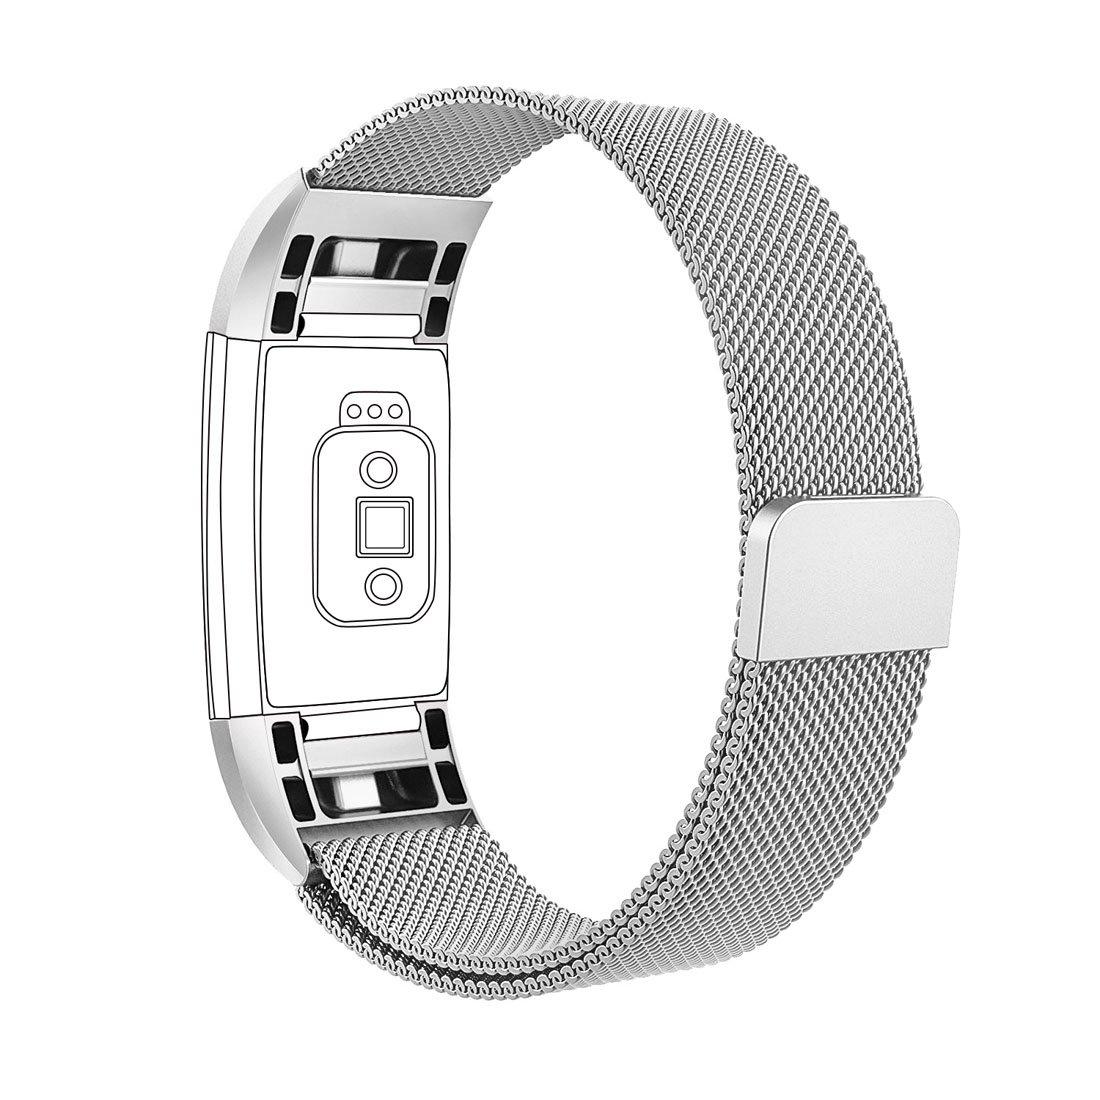 Rose Gold Large 6.7-8.1 GinCoband Milanese Loop Bands for Fitbit Charge 2,Stainless Steel Metal Bracelet with Magnet Lock Stainless Steel Metal Bracelet with Magnet Lock